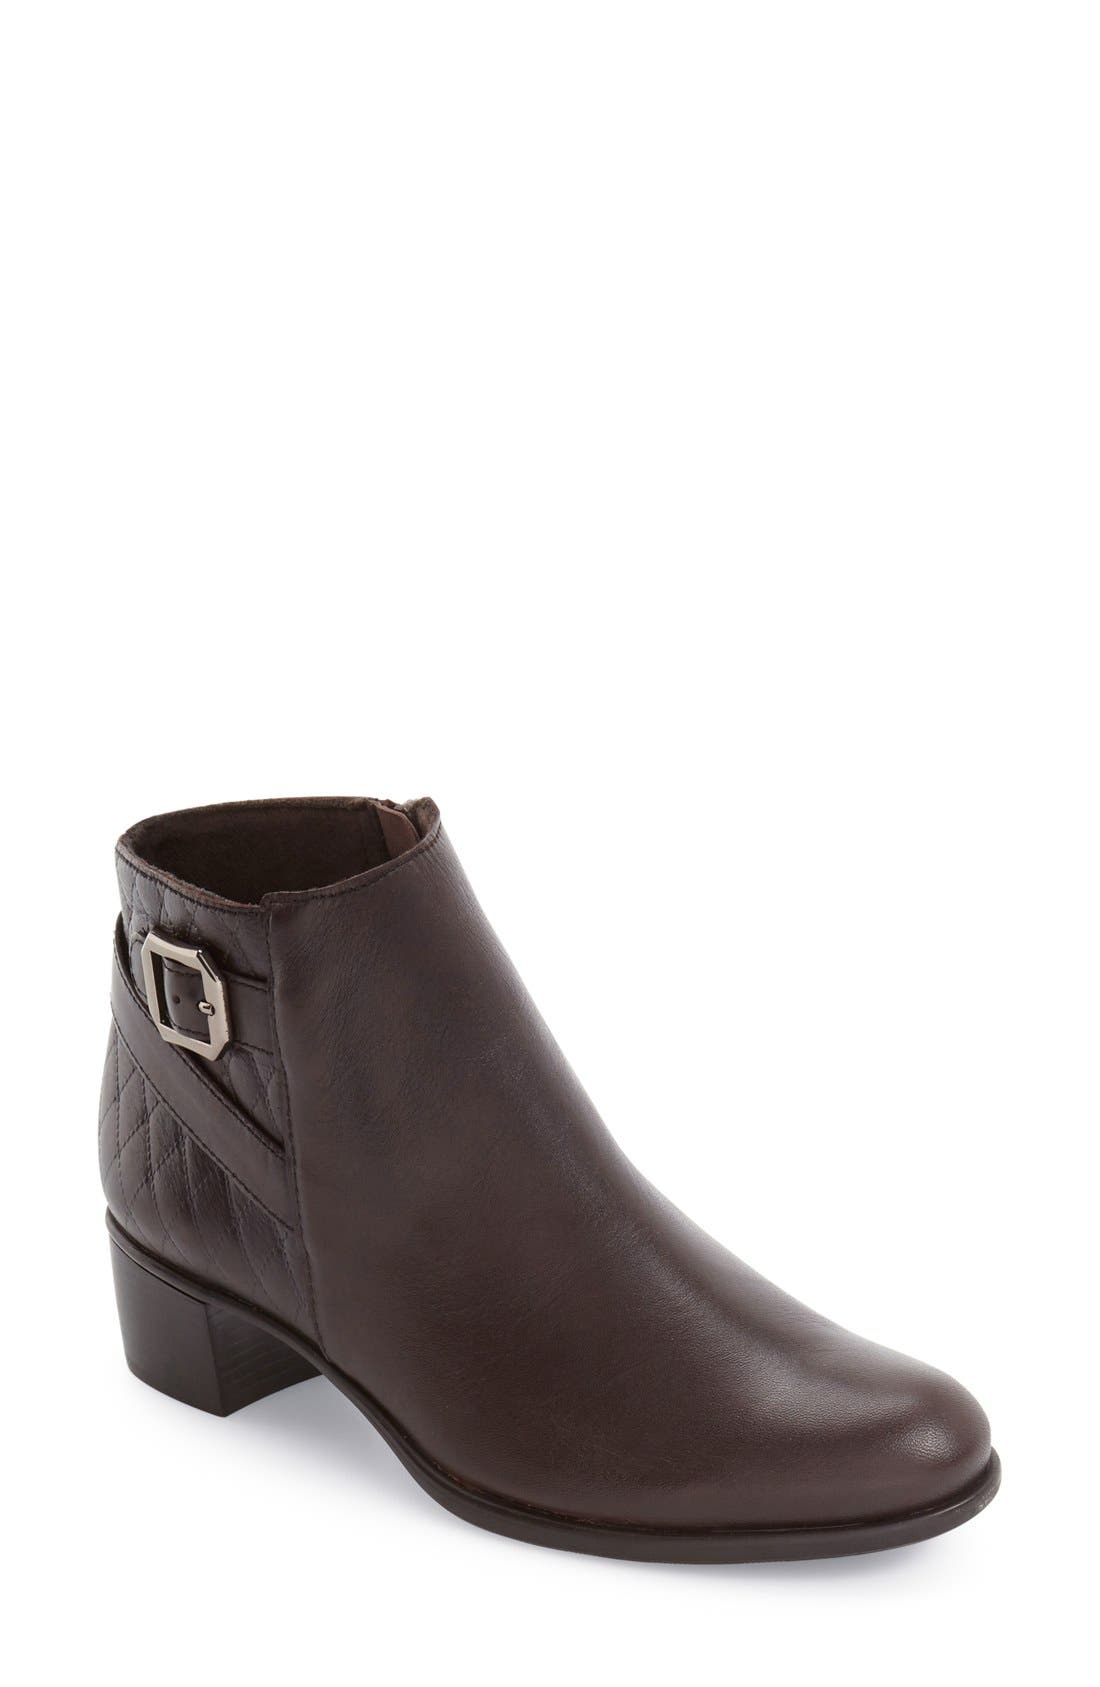 'Jolynn' Bootie,                         Main,                         color, Brown Quilted Leather